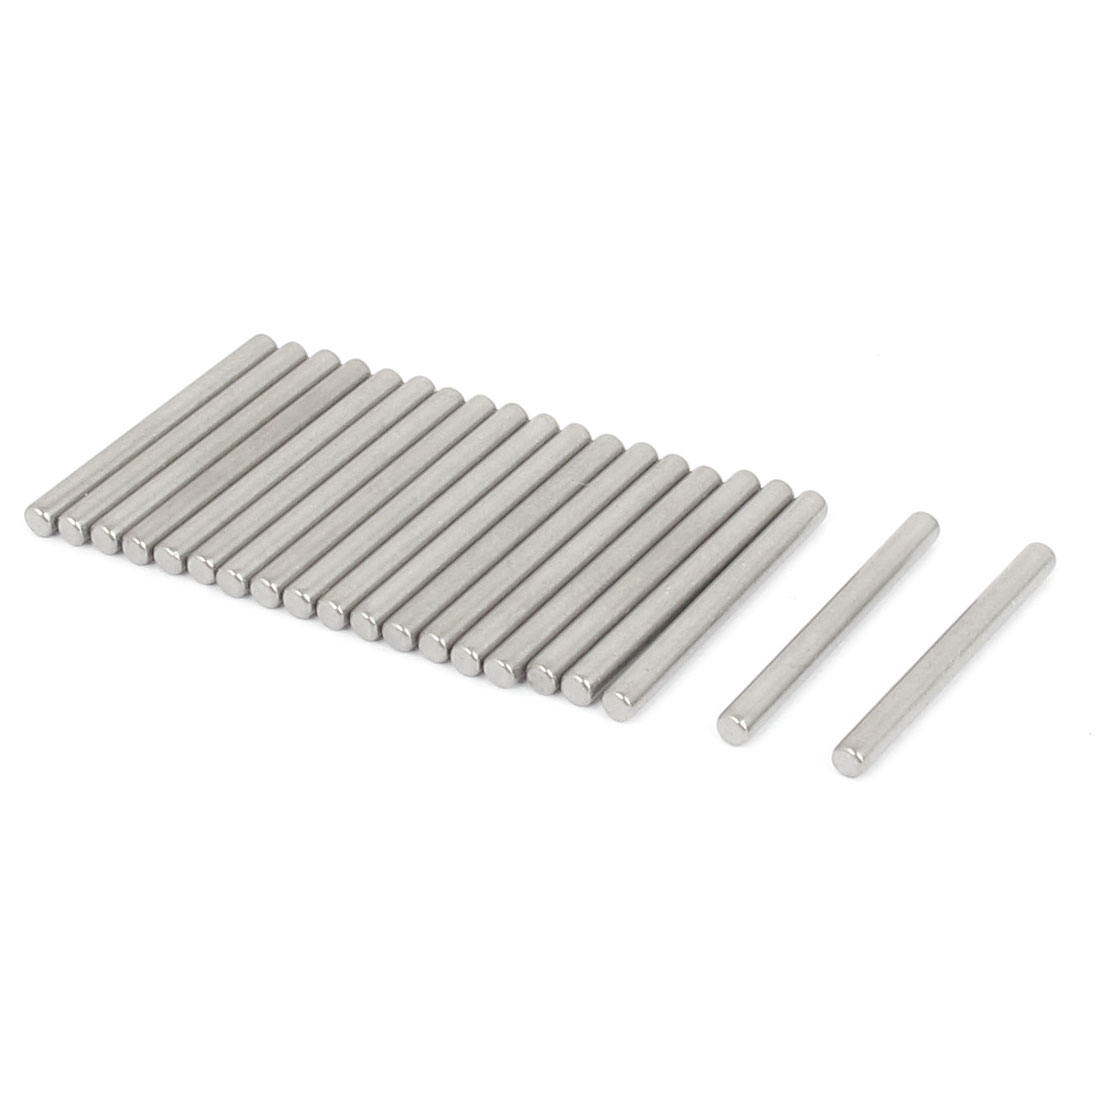 2.5mm x 25mm 304 Stainless Steel Dowel Pins Fasten Elements Silver Tone 20pcs